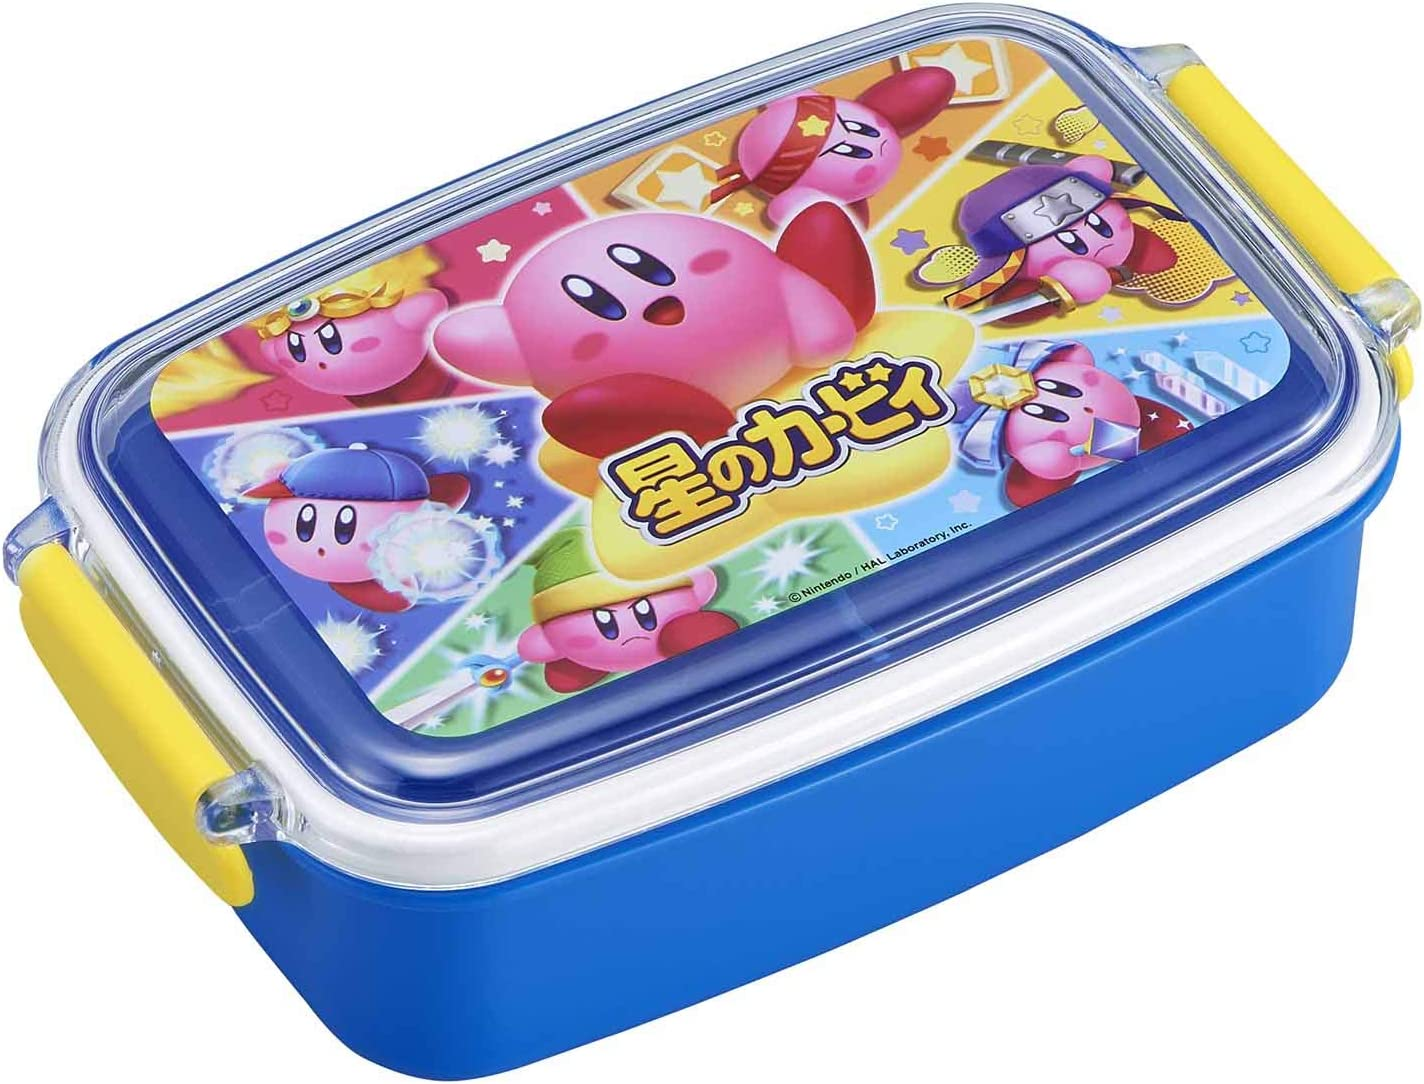 Kirby Max 78% OFF Many popular brands Lunch Food Container Pl-1R Box Blue